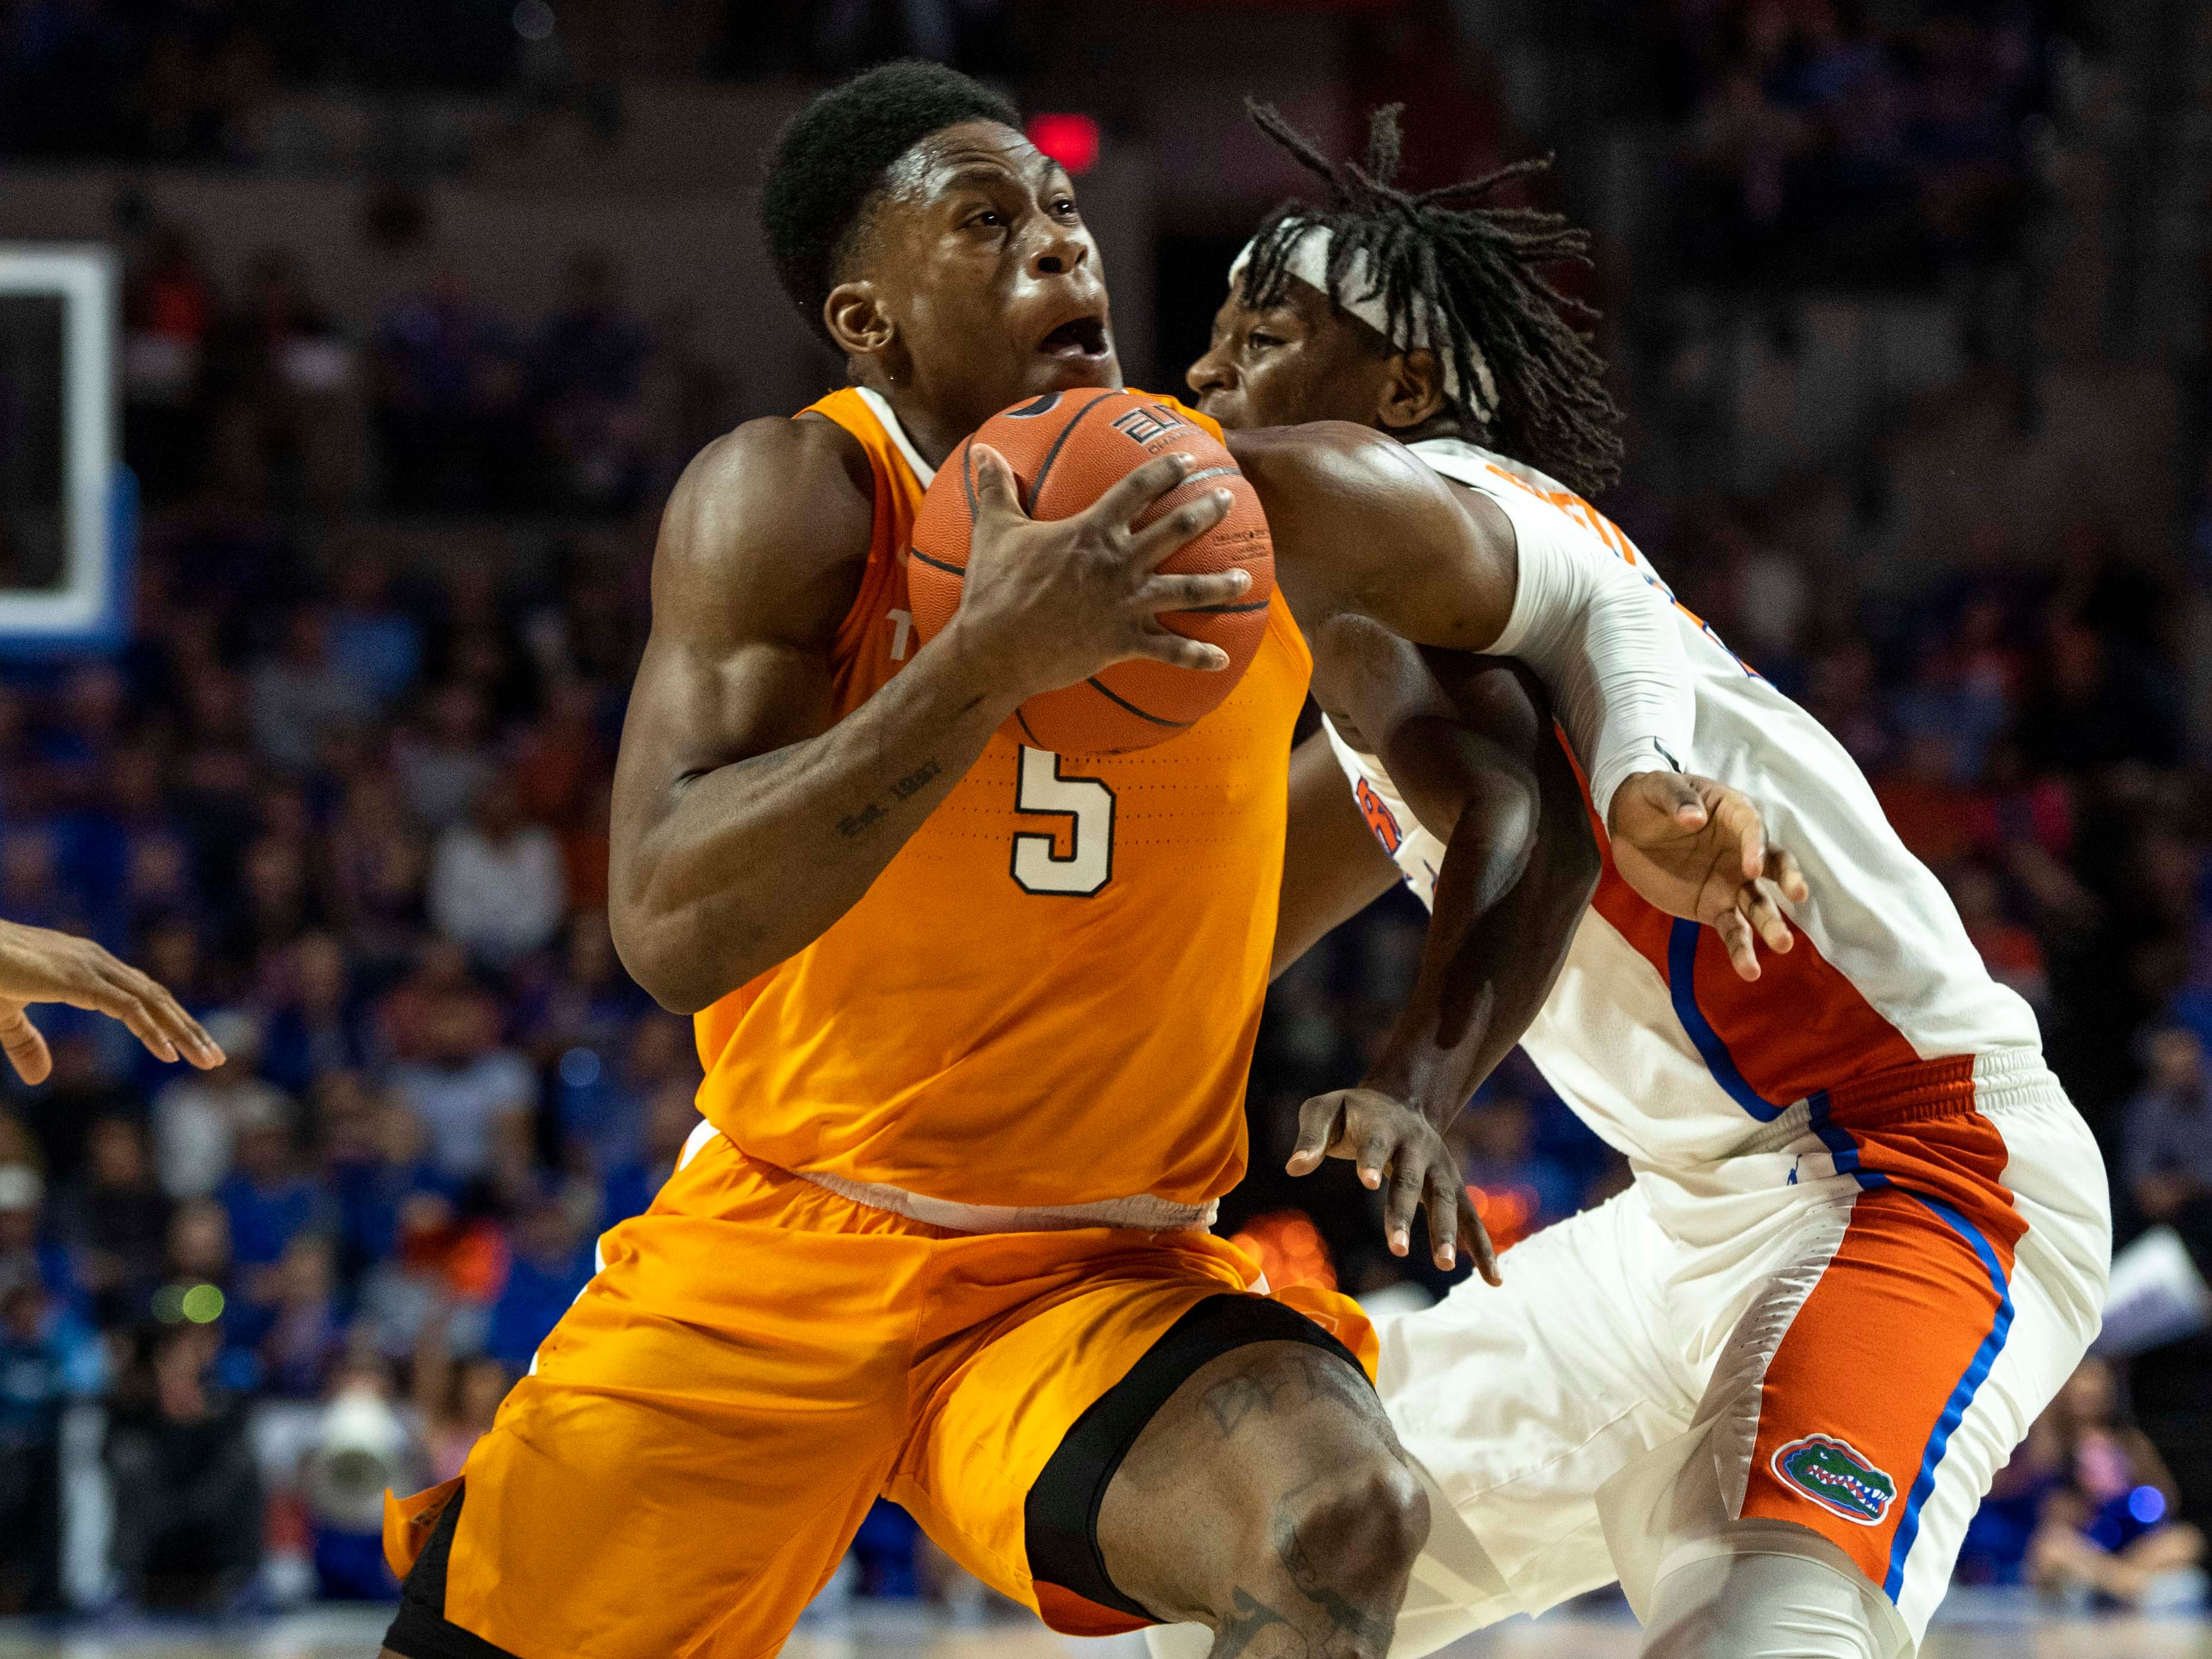 Tennessee Volunteers guard Admiral Schofield (5) drives for the basket as Florida Gators forward Dontay Bassett (21) defends during the first half at Exactech Arena.